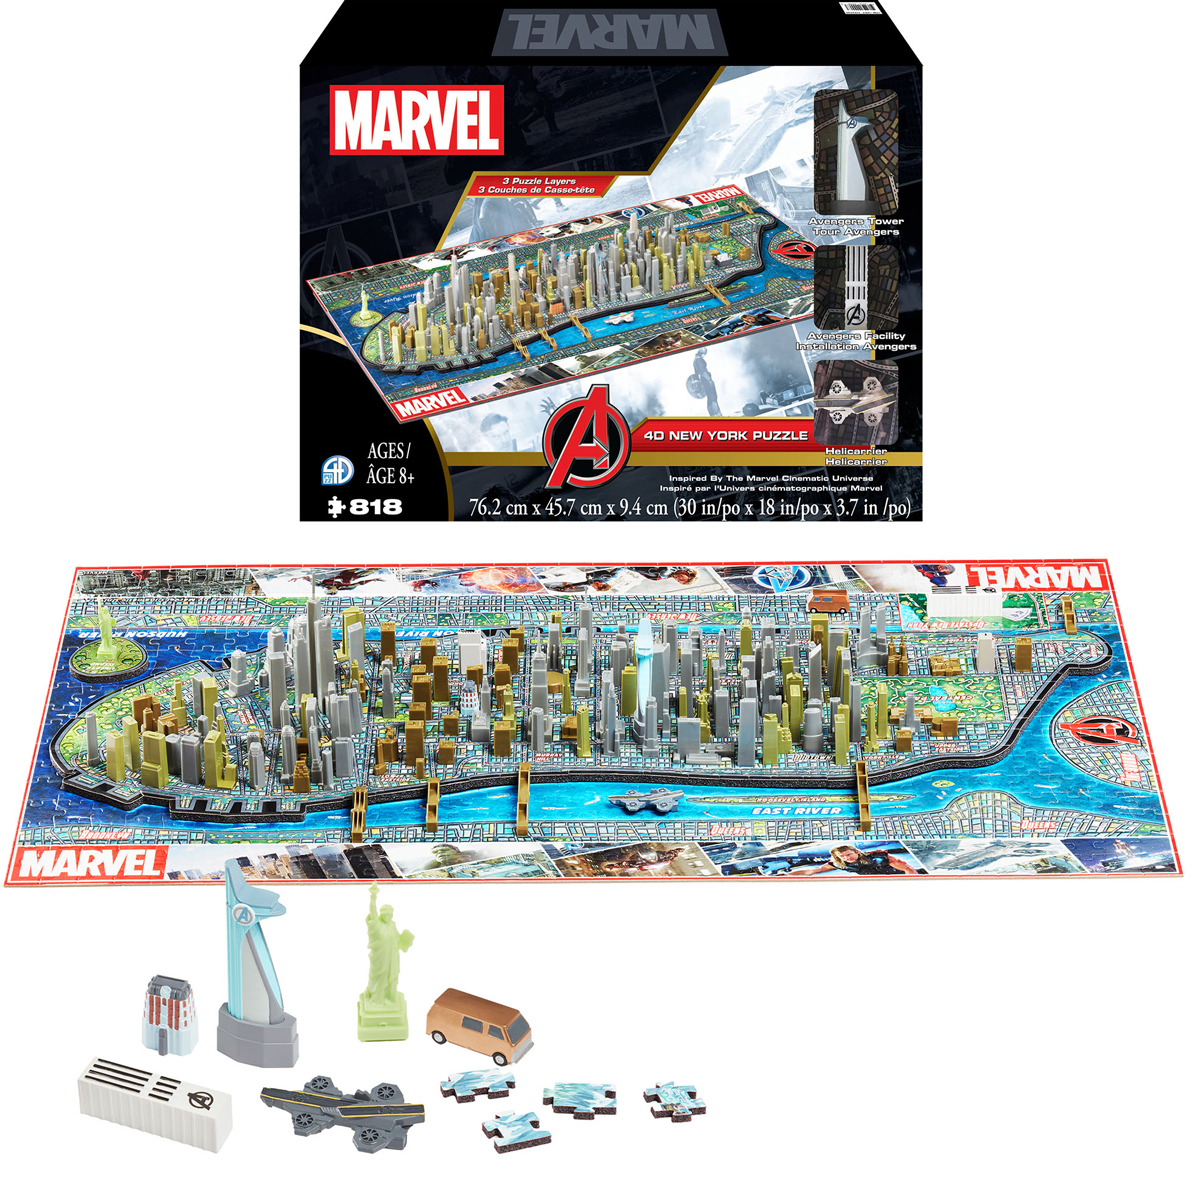 4D Puzzle:  Marvel New York Puzzle New York 4D Puzzle